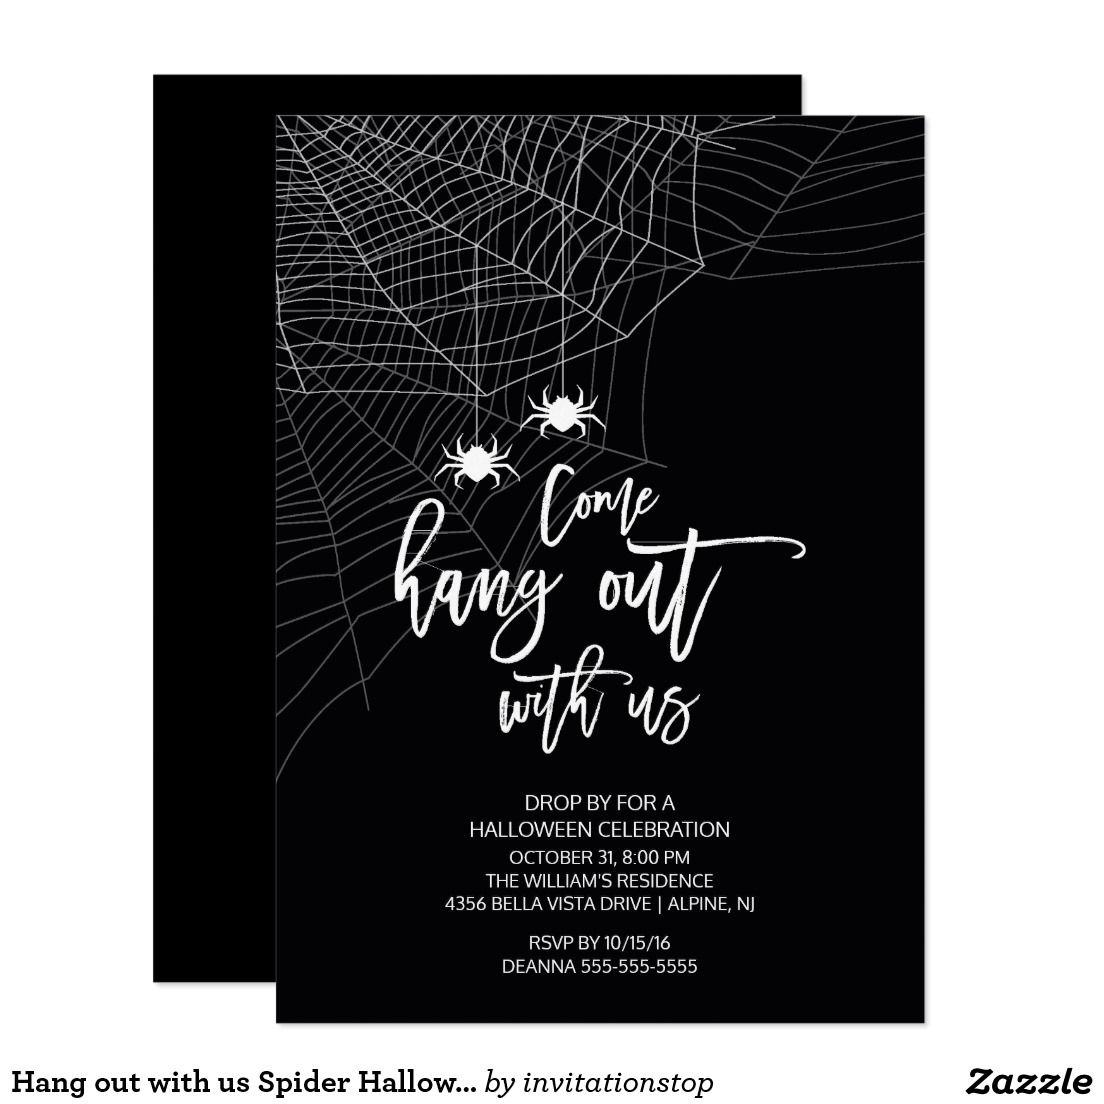 Hang out with us Spider Halloween Party Card